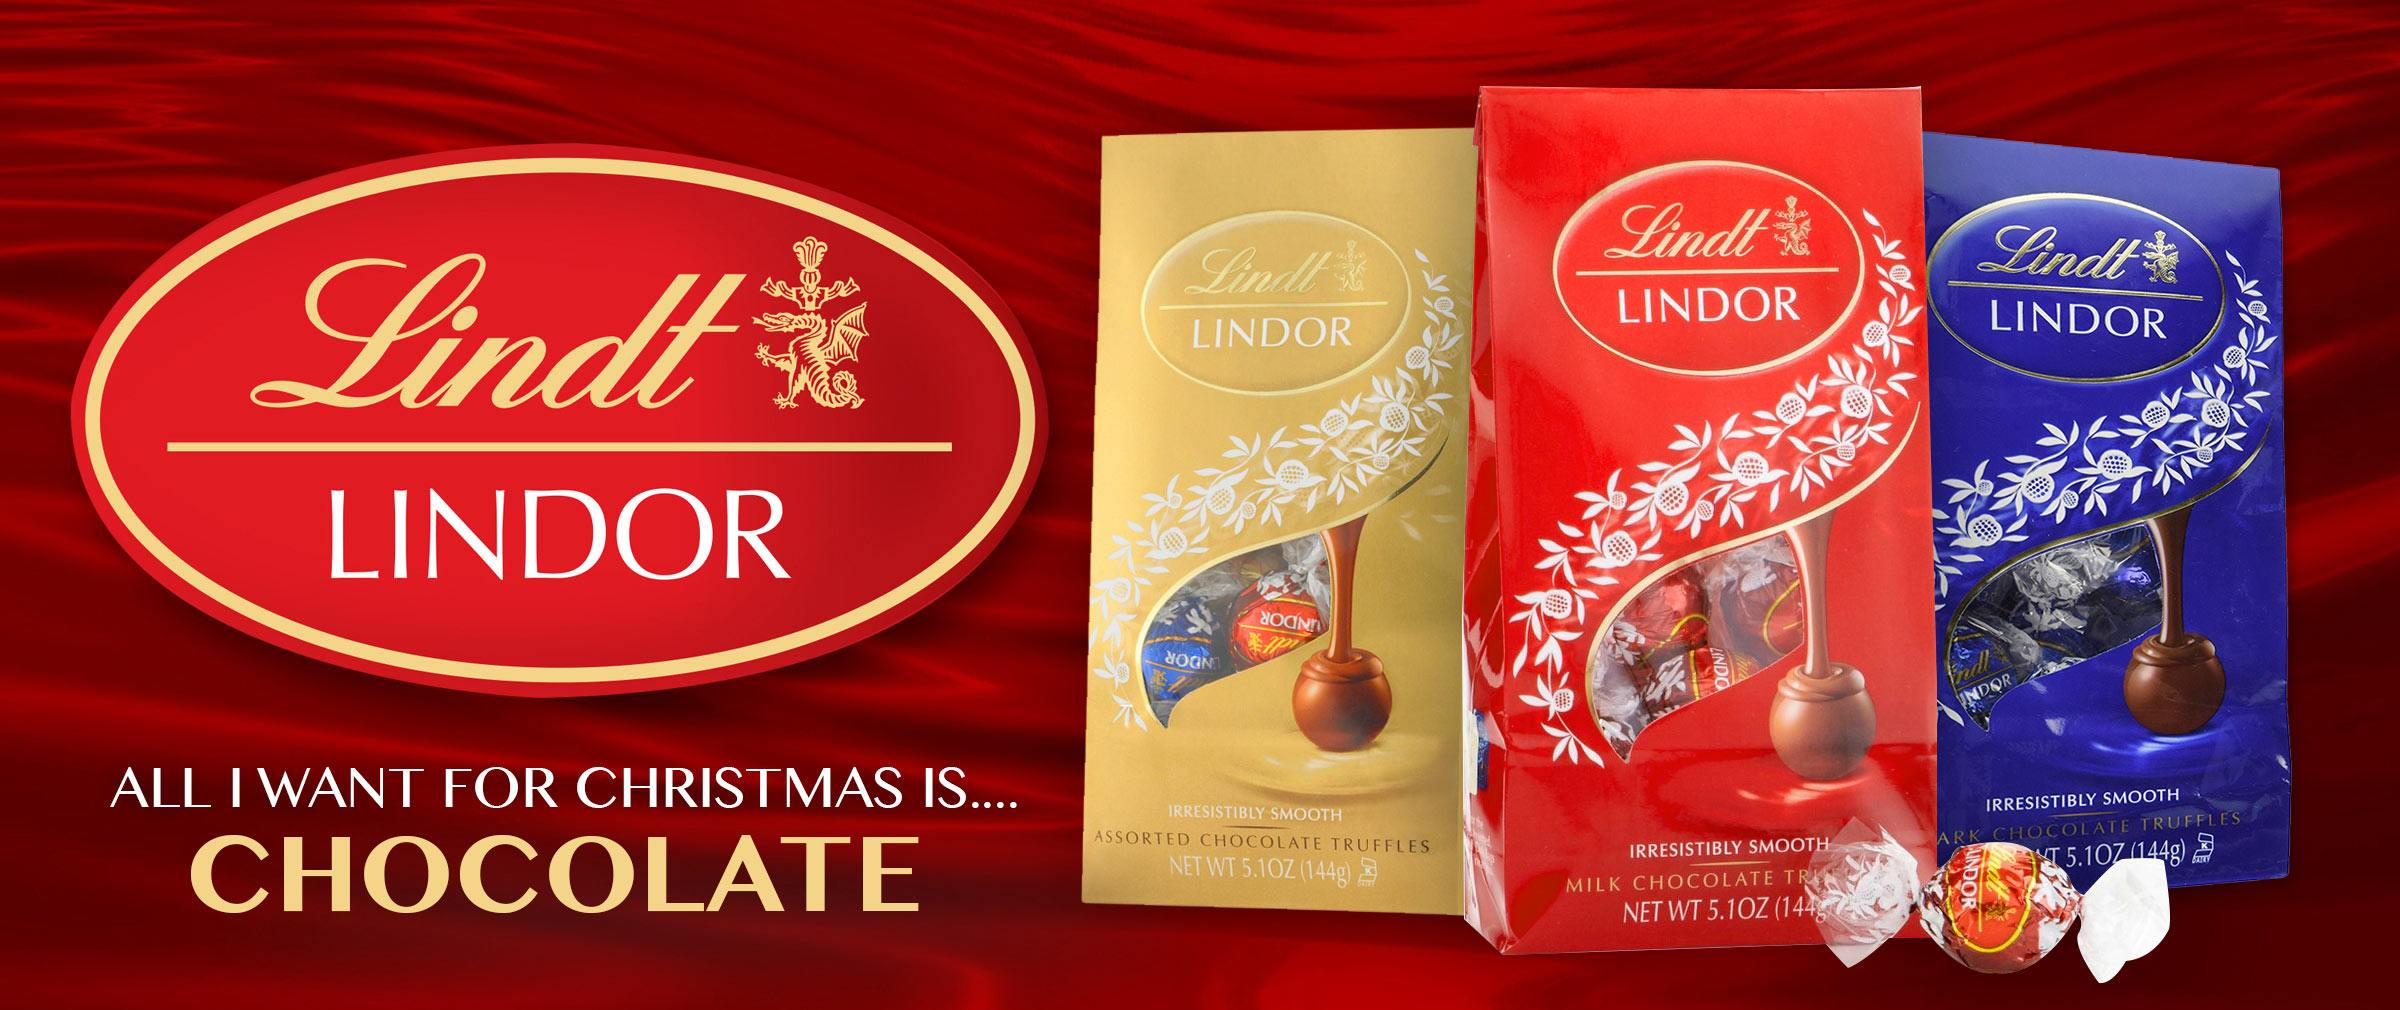 Christmas-Lindt_webslider